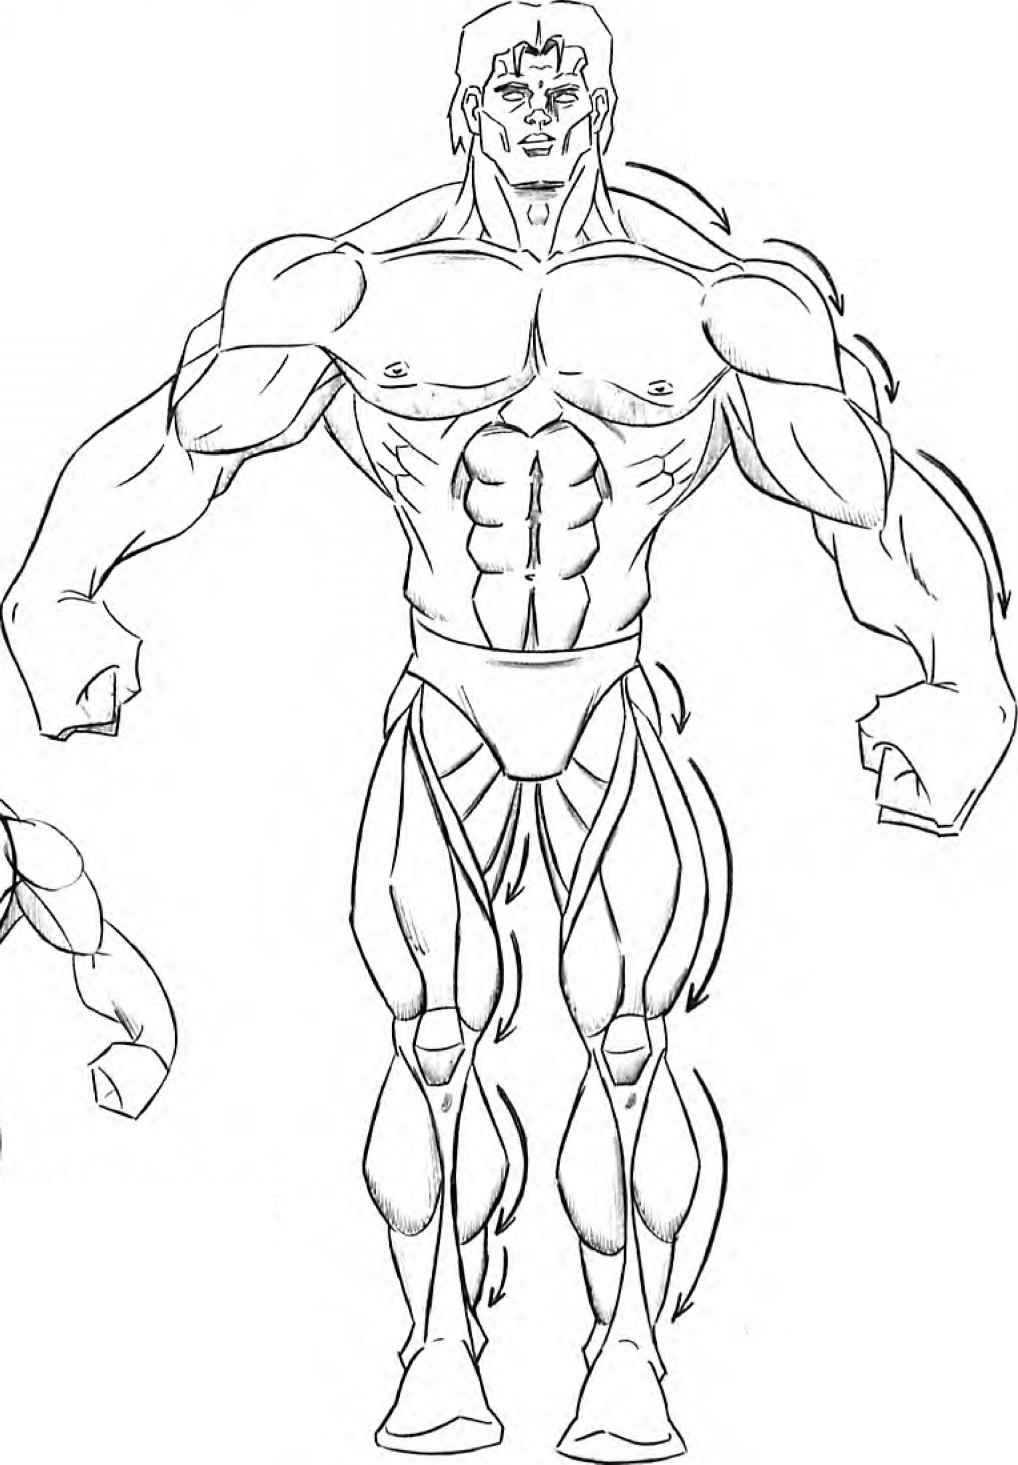 1018x1465 Risultati Immagini Per Drawing Muscles For Comics Drawing Muscle